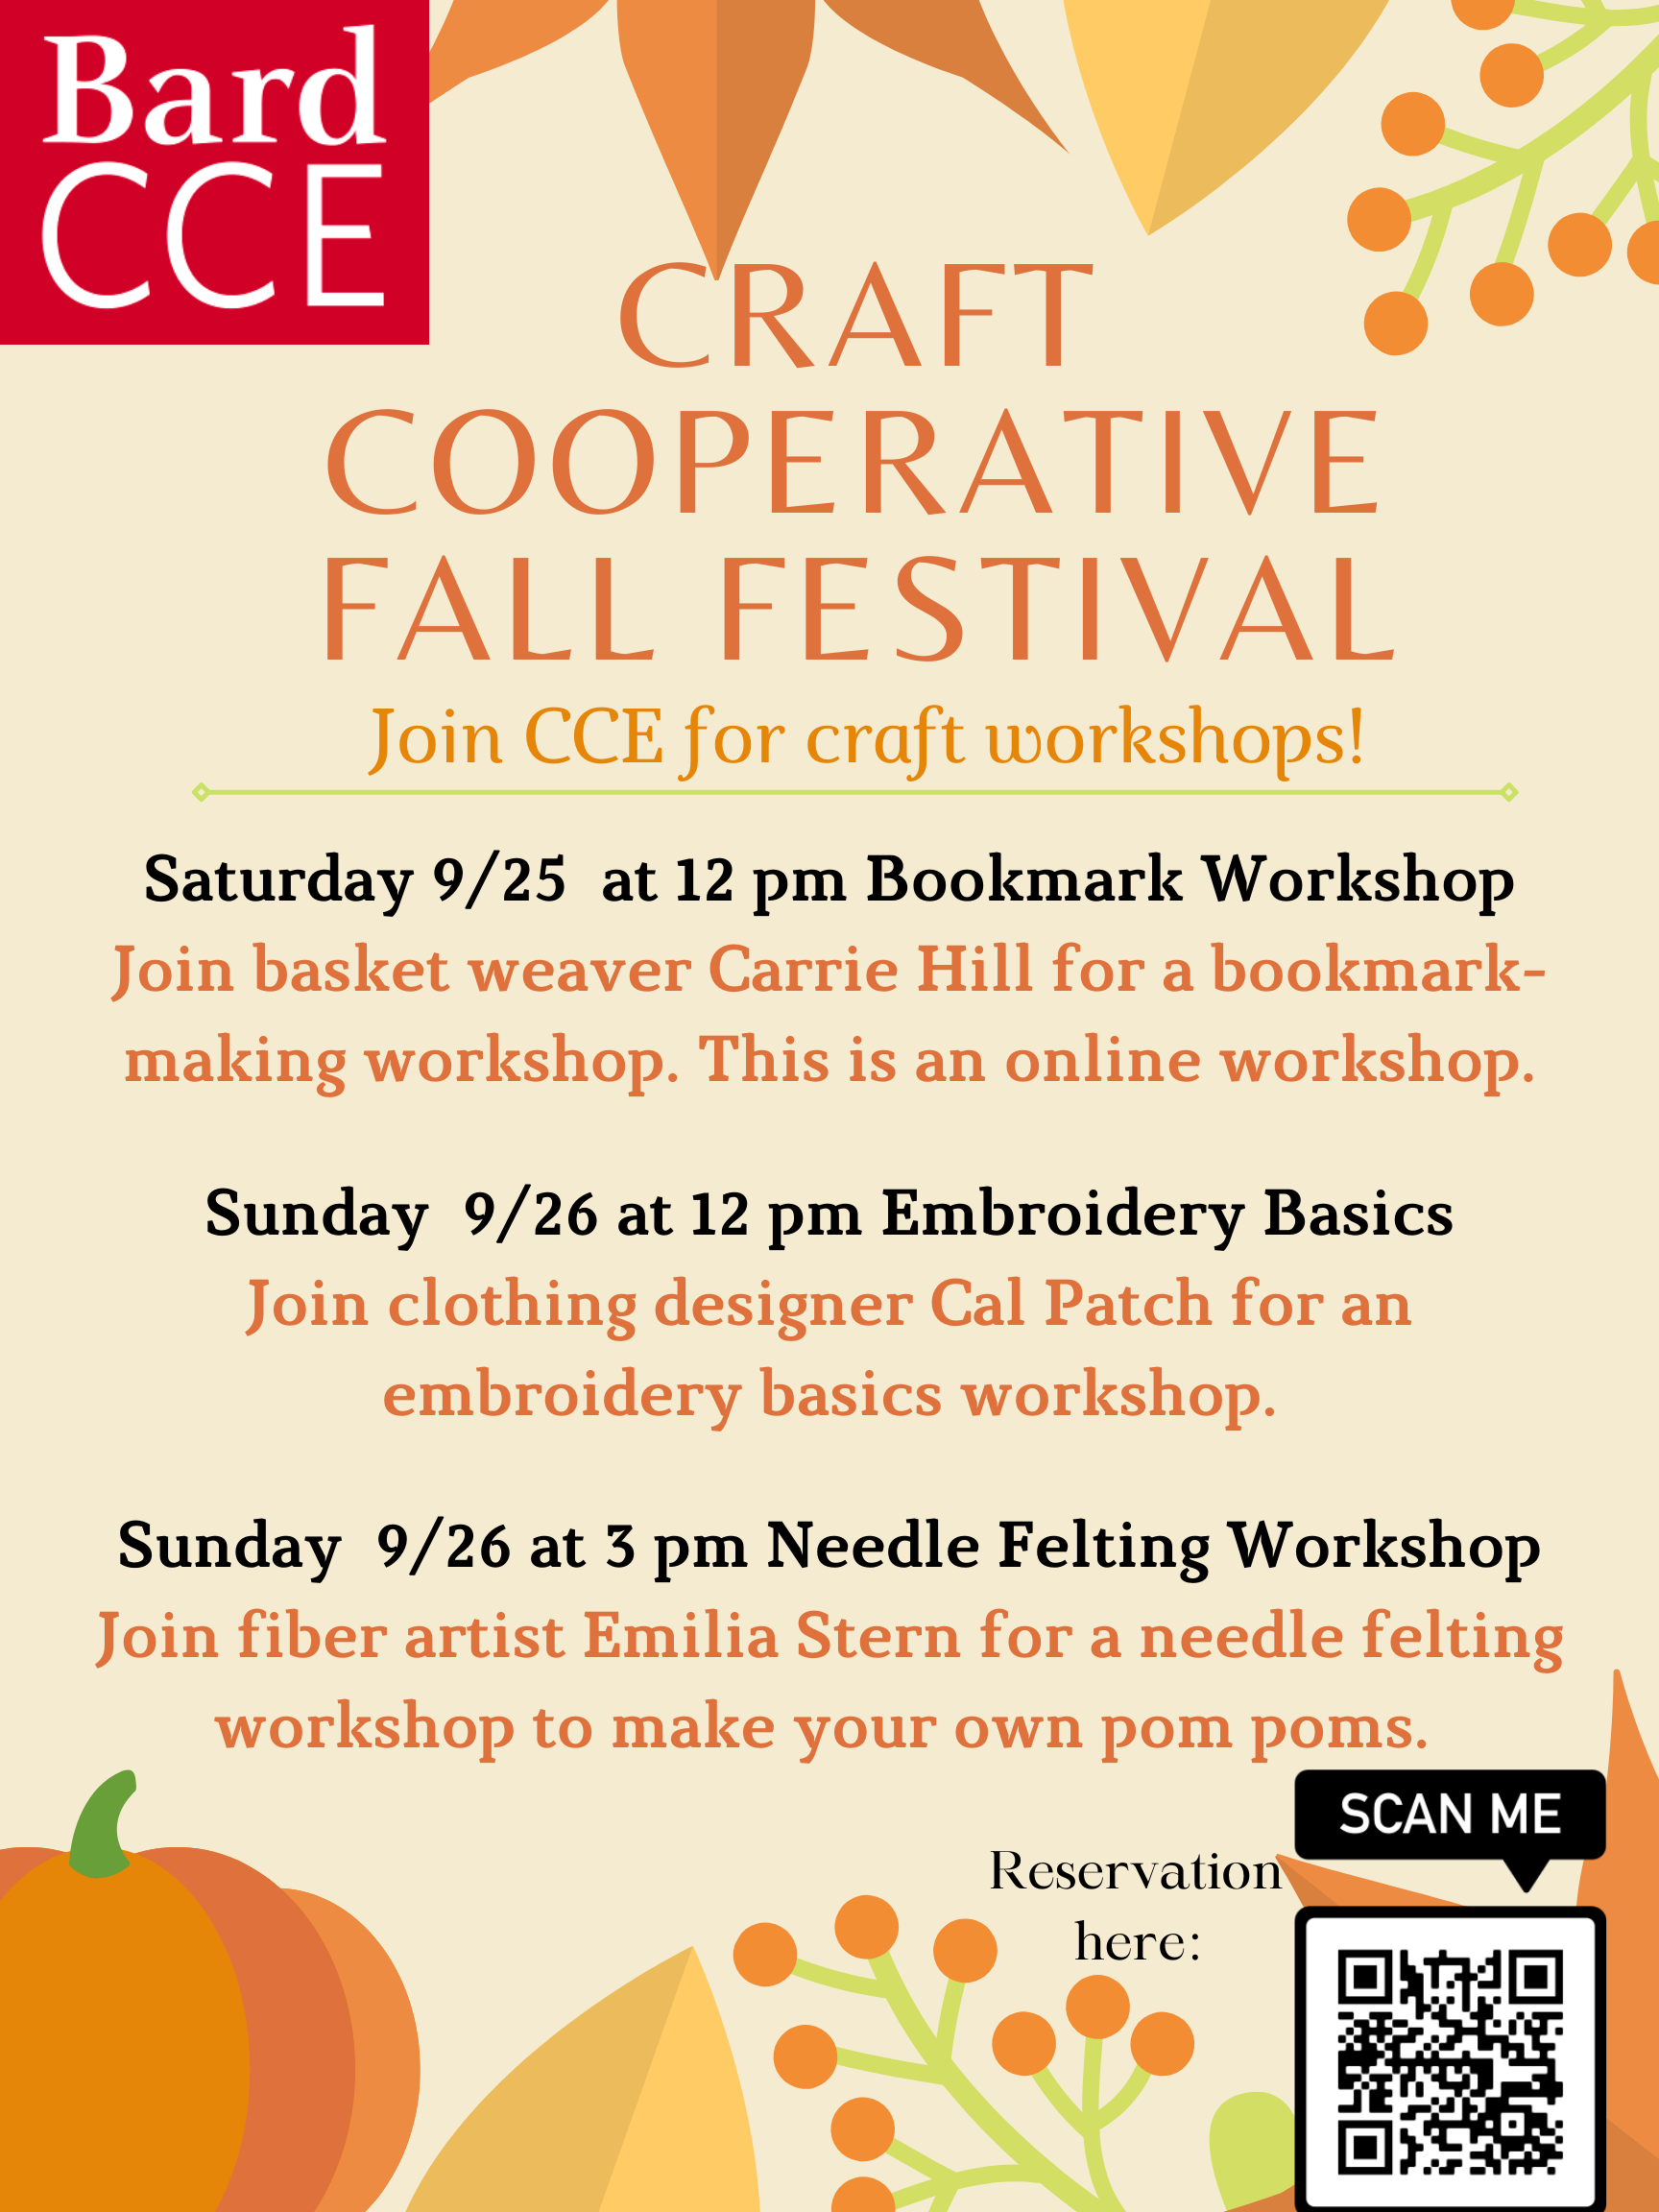 [Craft Cooperative Fall Festival Workshop on Bookmark Making]